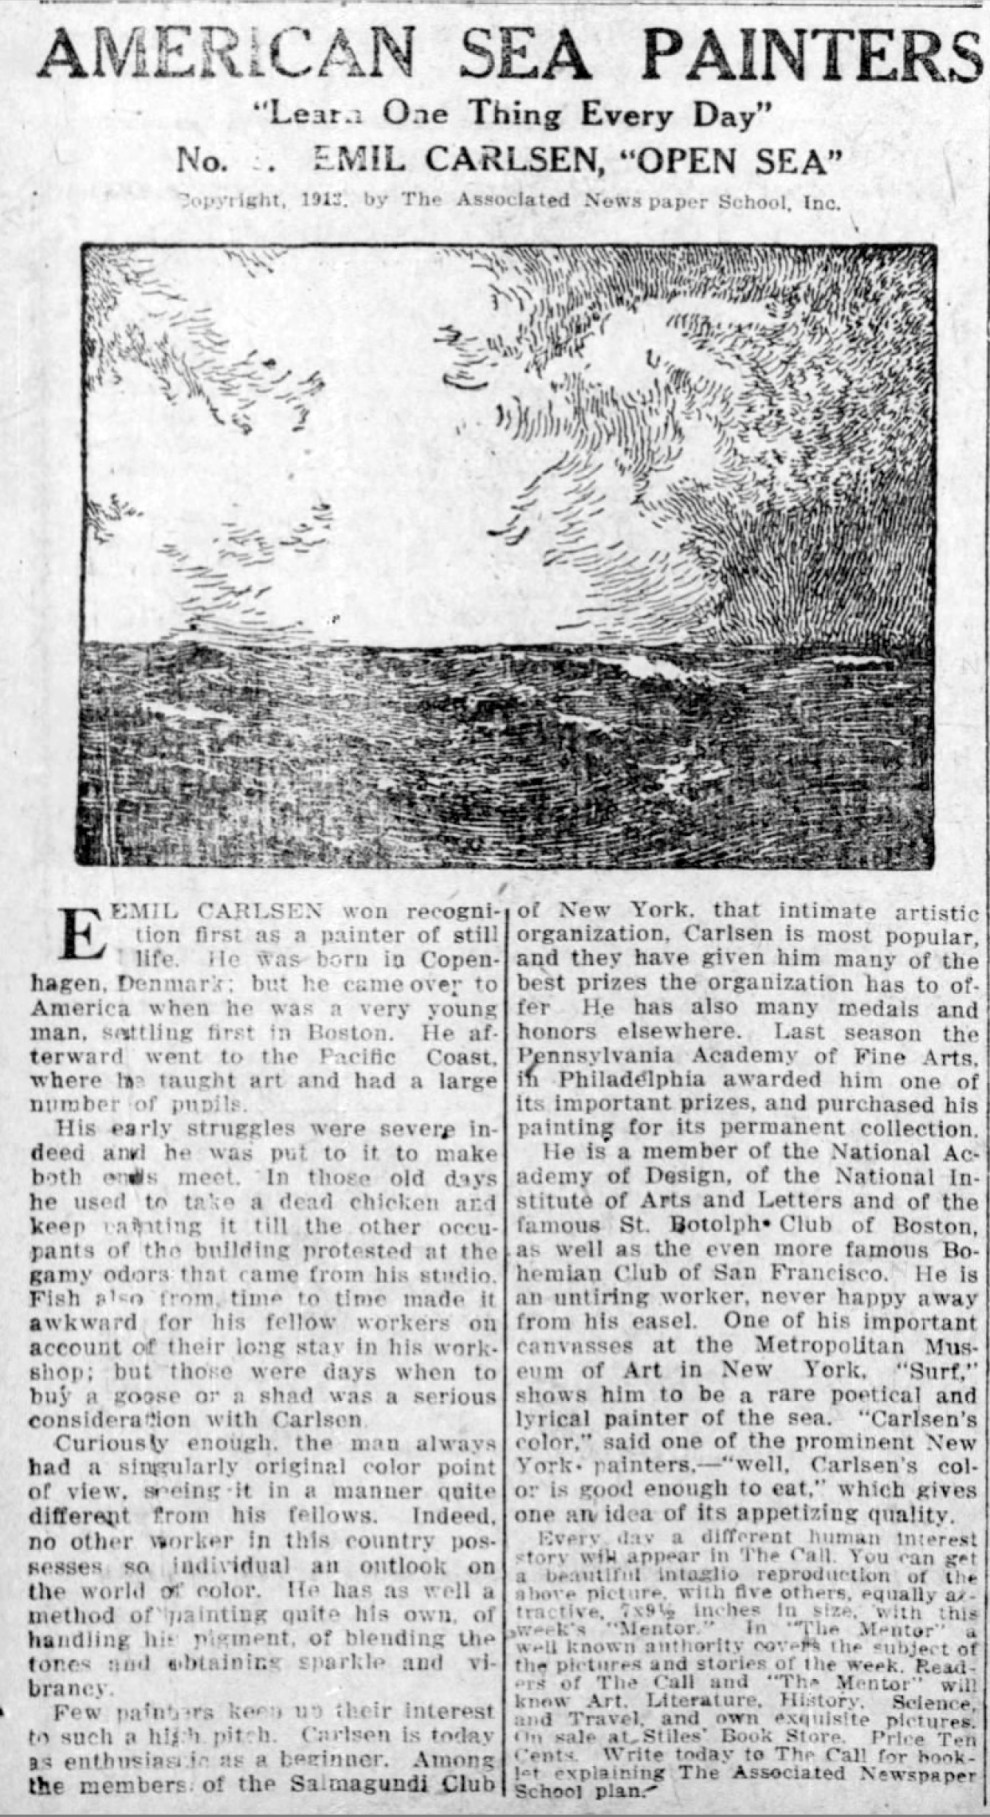 """The Morning Call, Allentown, PA, """"American sea painters : Learn one thing every day ; No.6 Emil Carlsen, Open sea"""", Saturday, July 12, 1913, page 3, illustrated: b&w"""